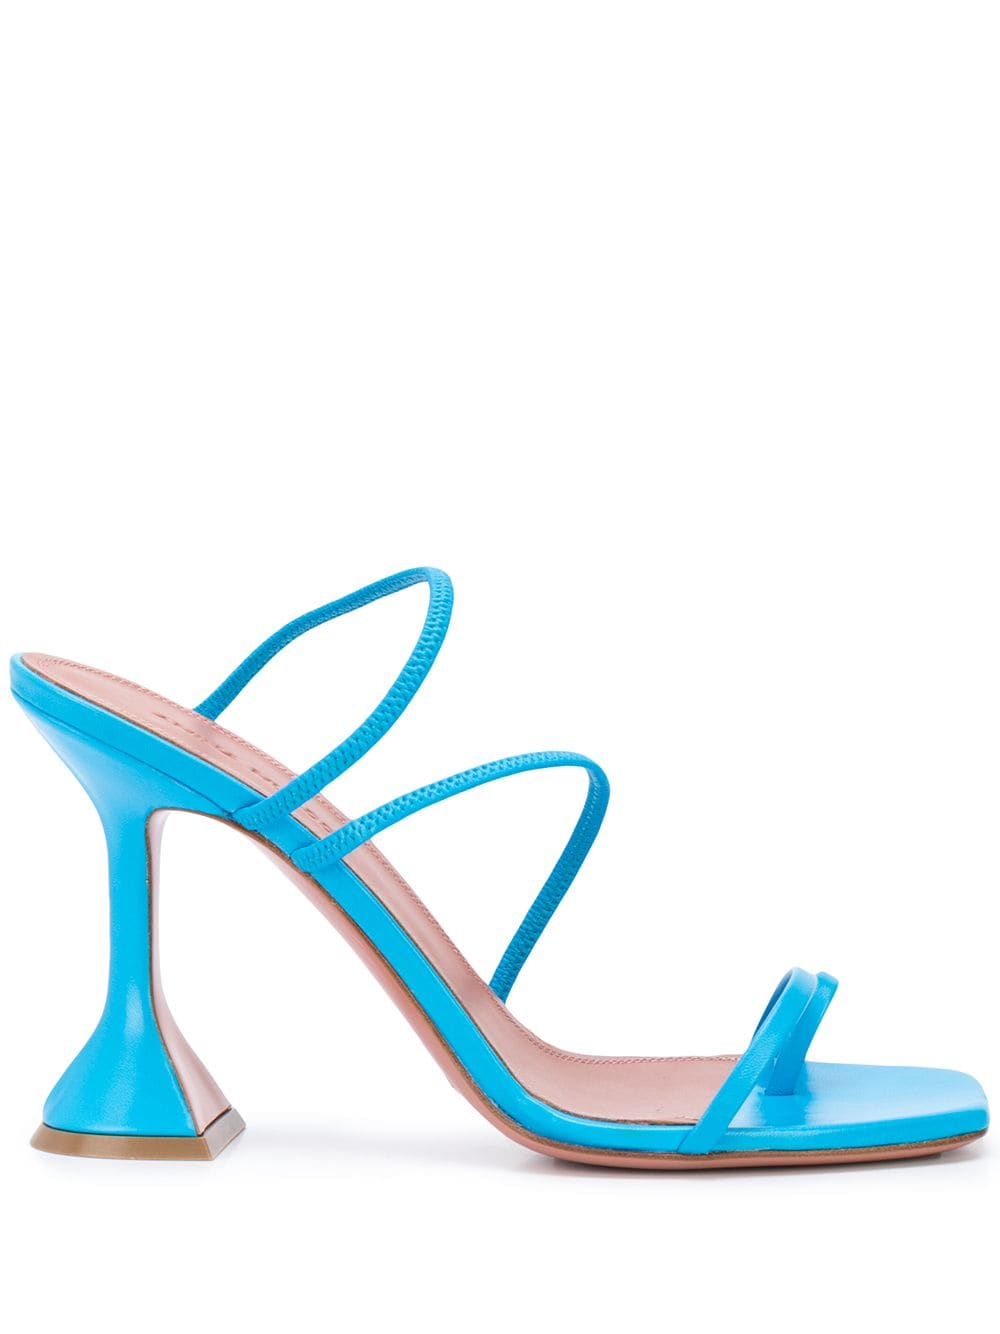 Naima Sandals by Amina Mauddi, available on farfetch.com for $695 Kendall Jenner Shoes Exact Product